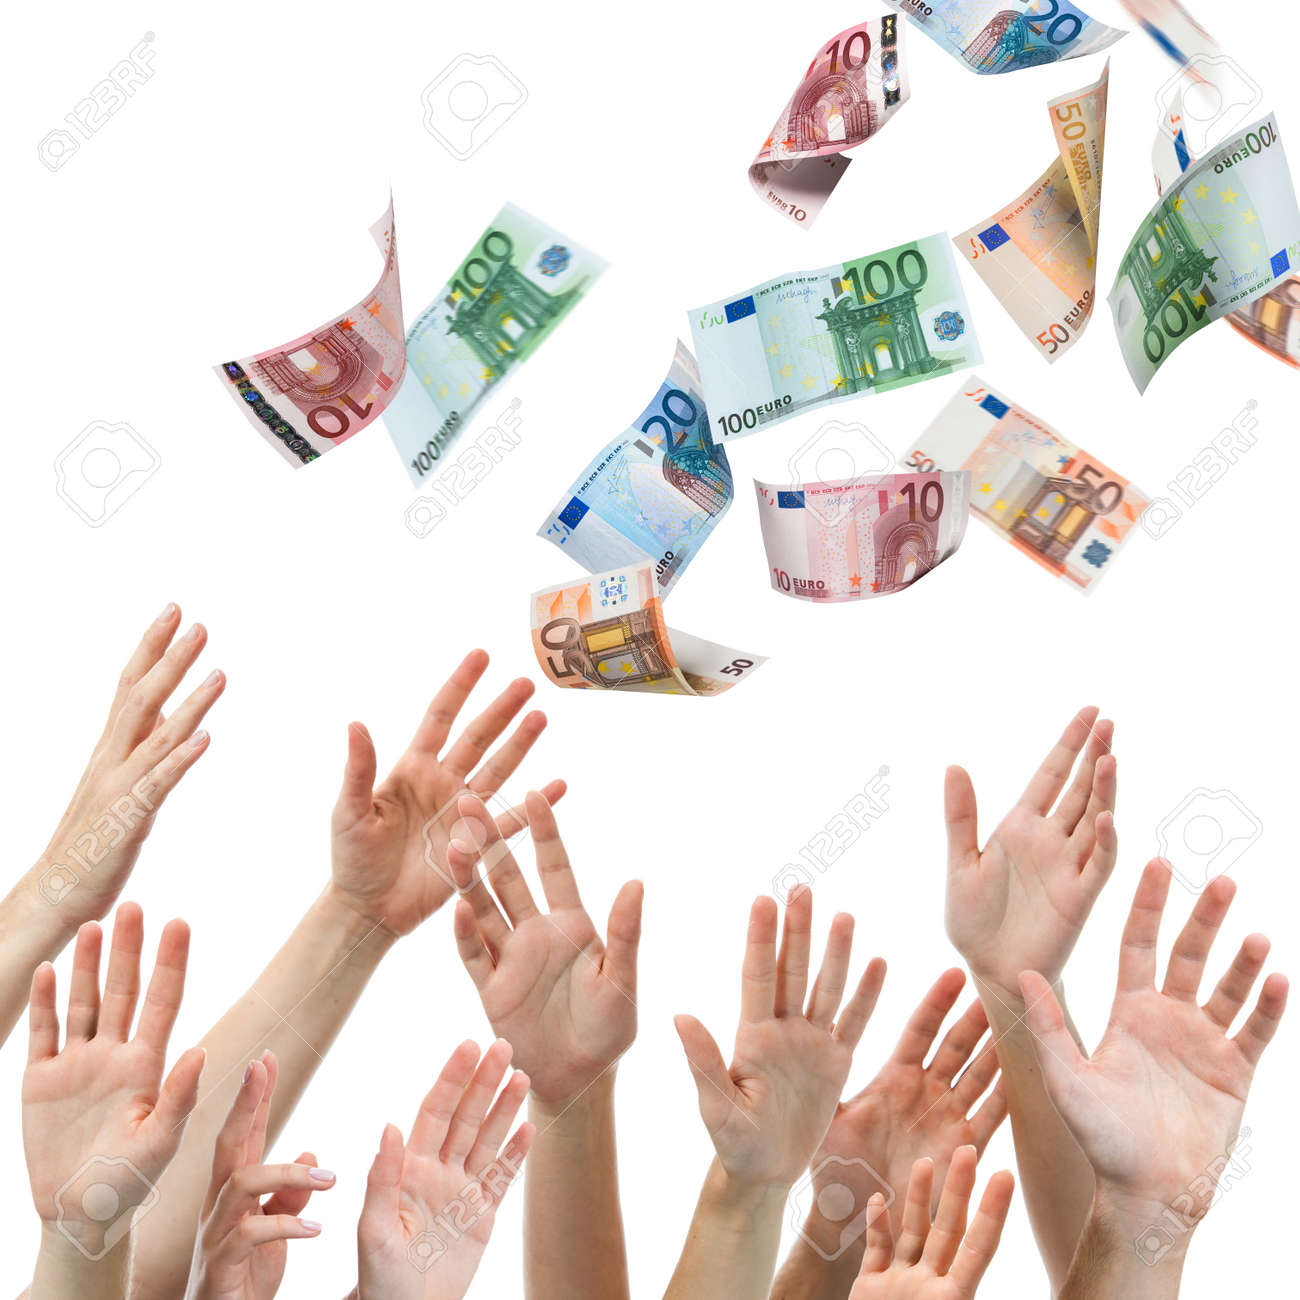 Hands reaching for Euro money flying in the air Stock Photo - 22223922